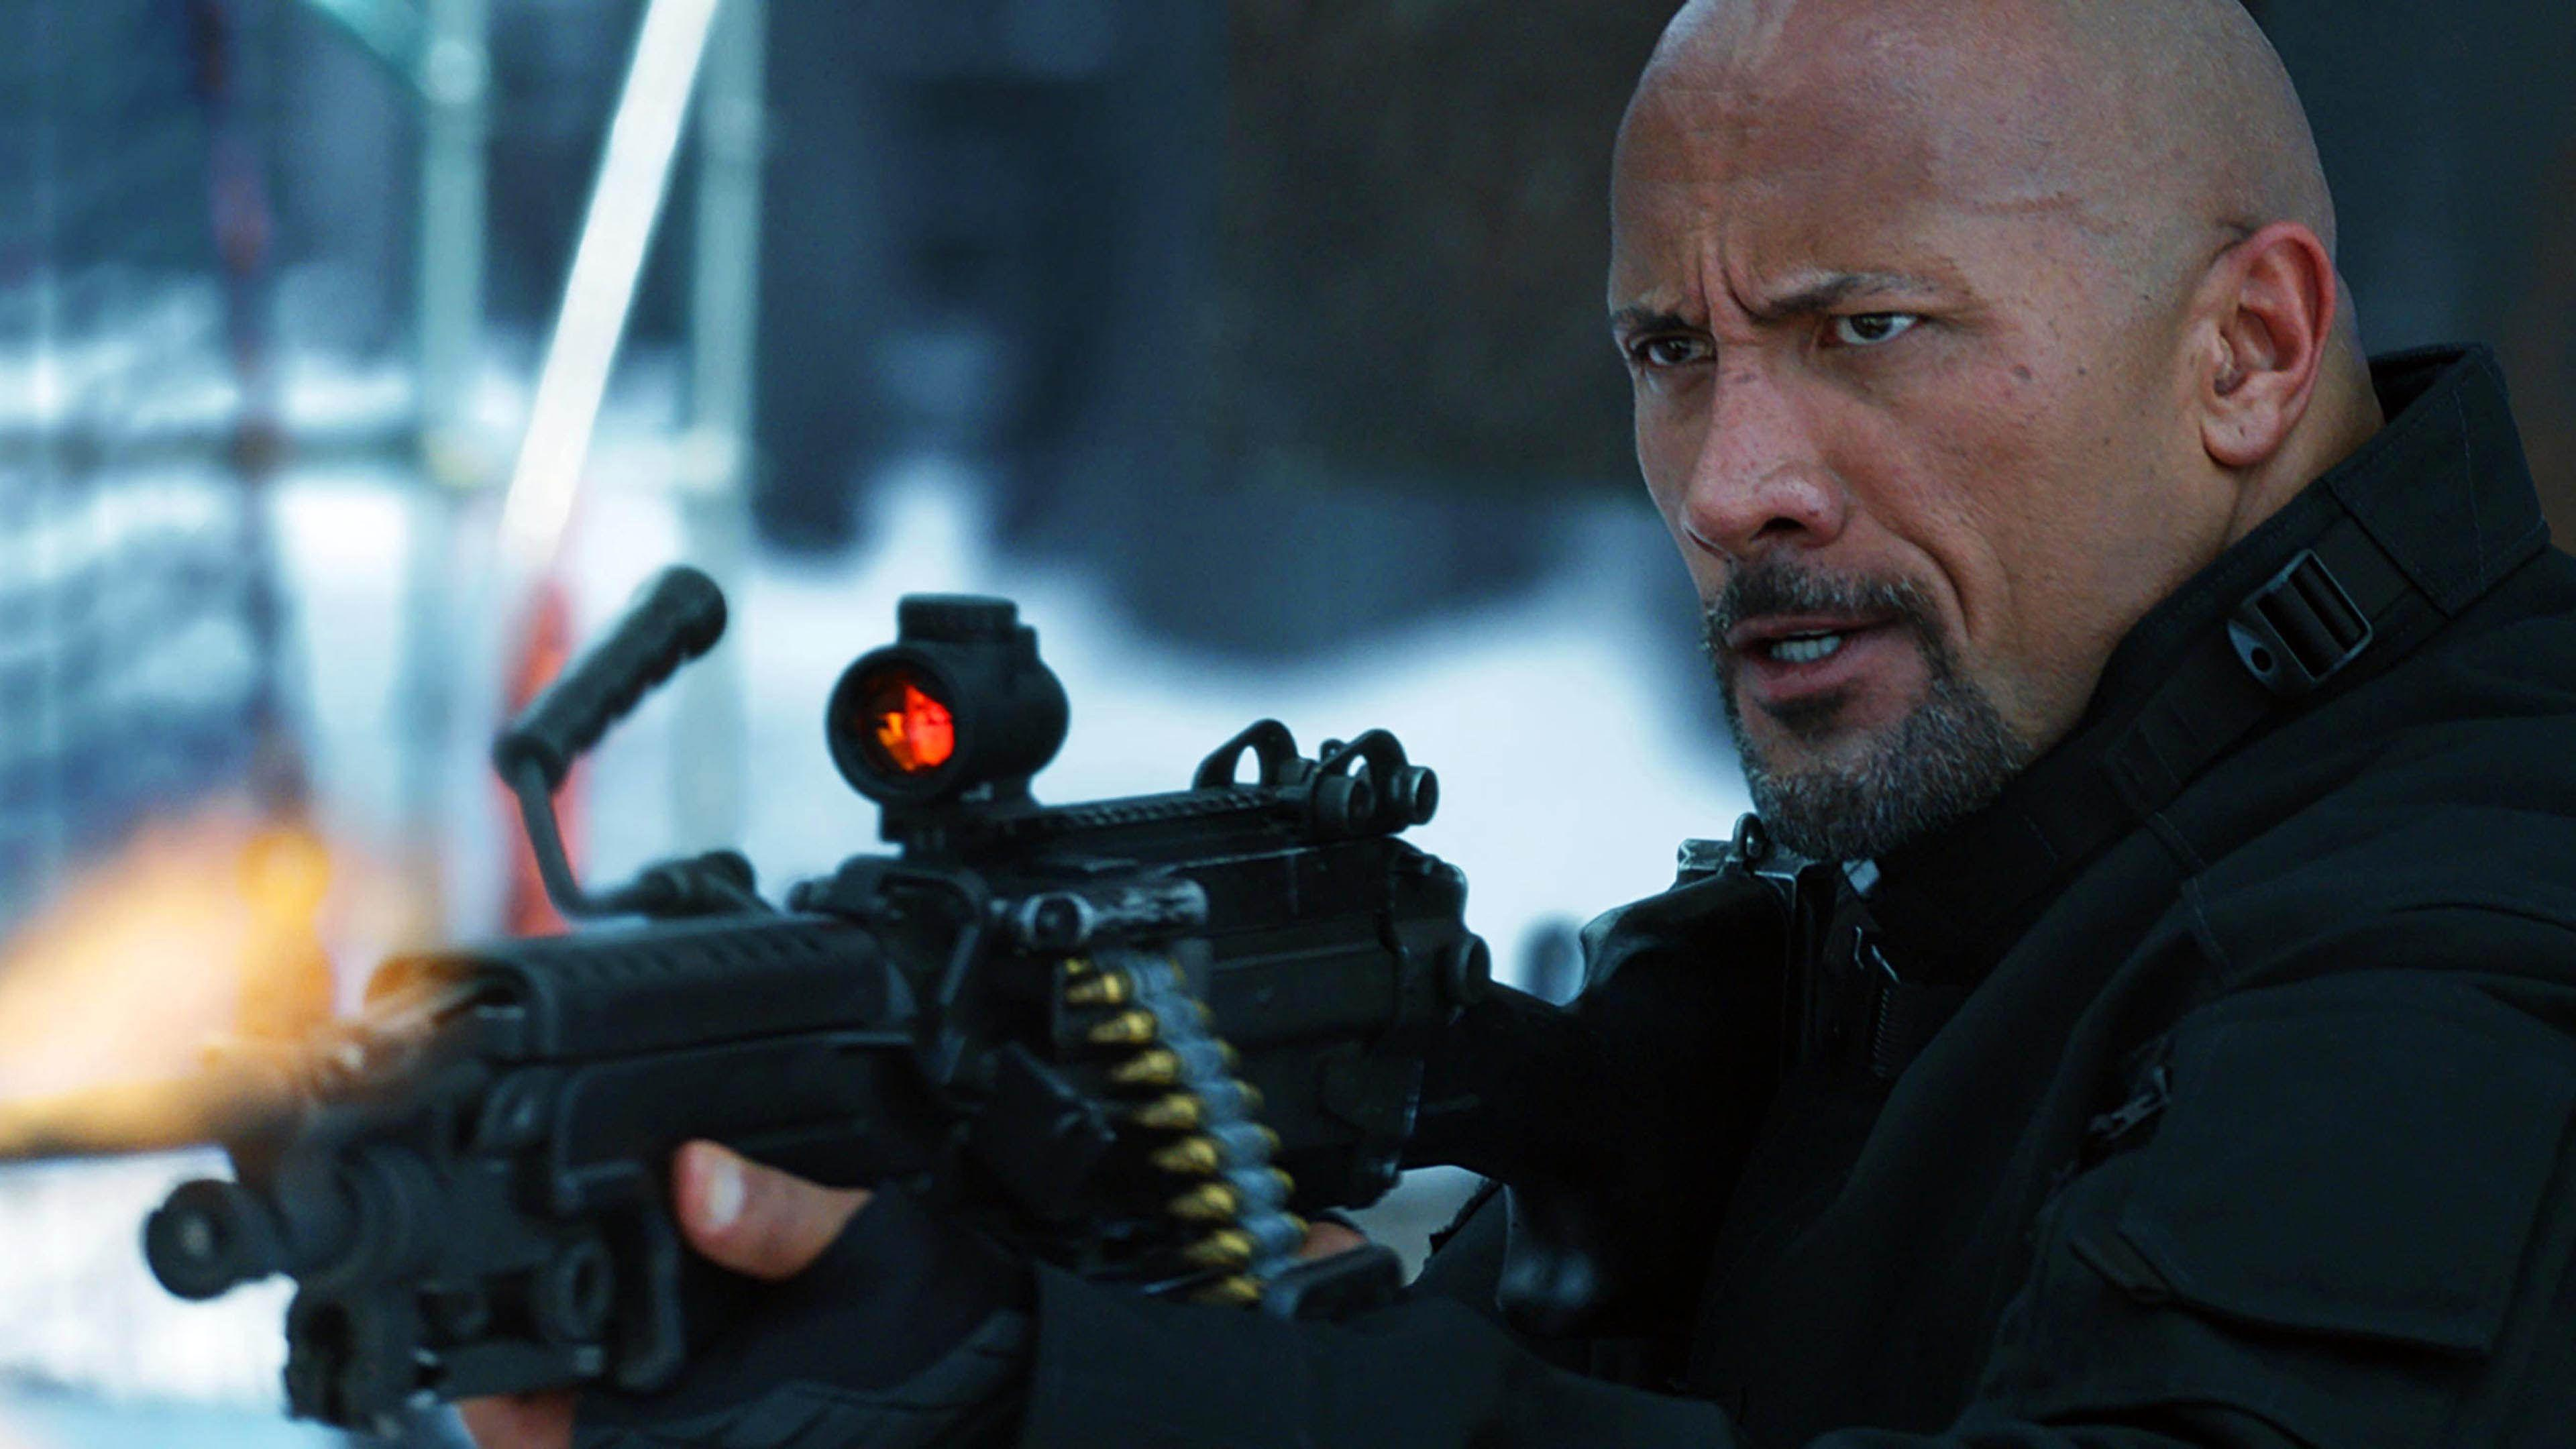 Dwayne Johnson - The Fate of the Furious (Fast & Furious 8 ...